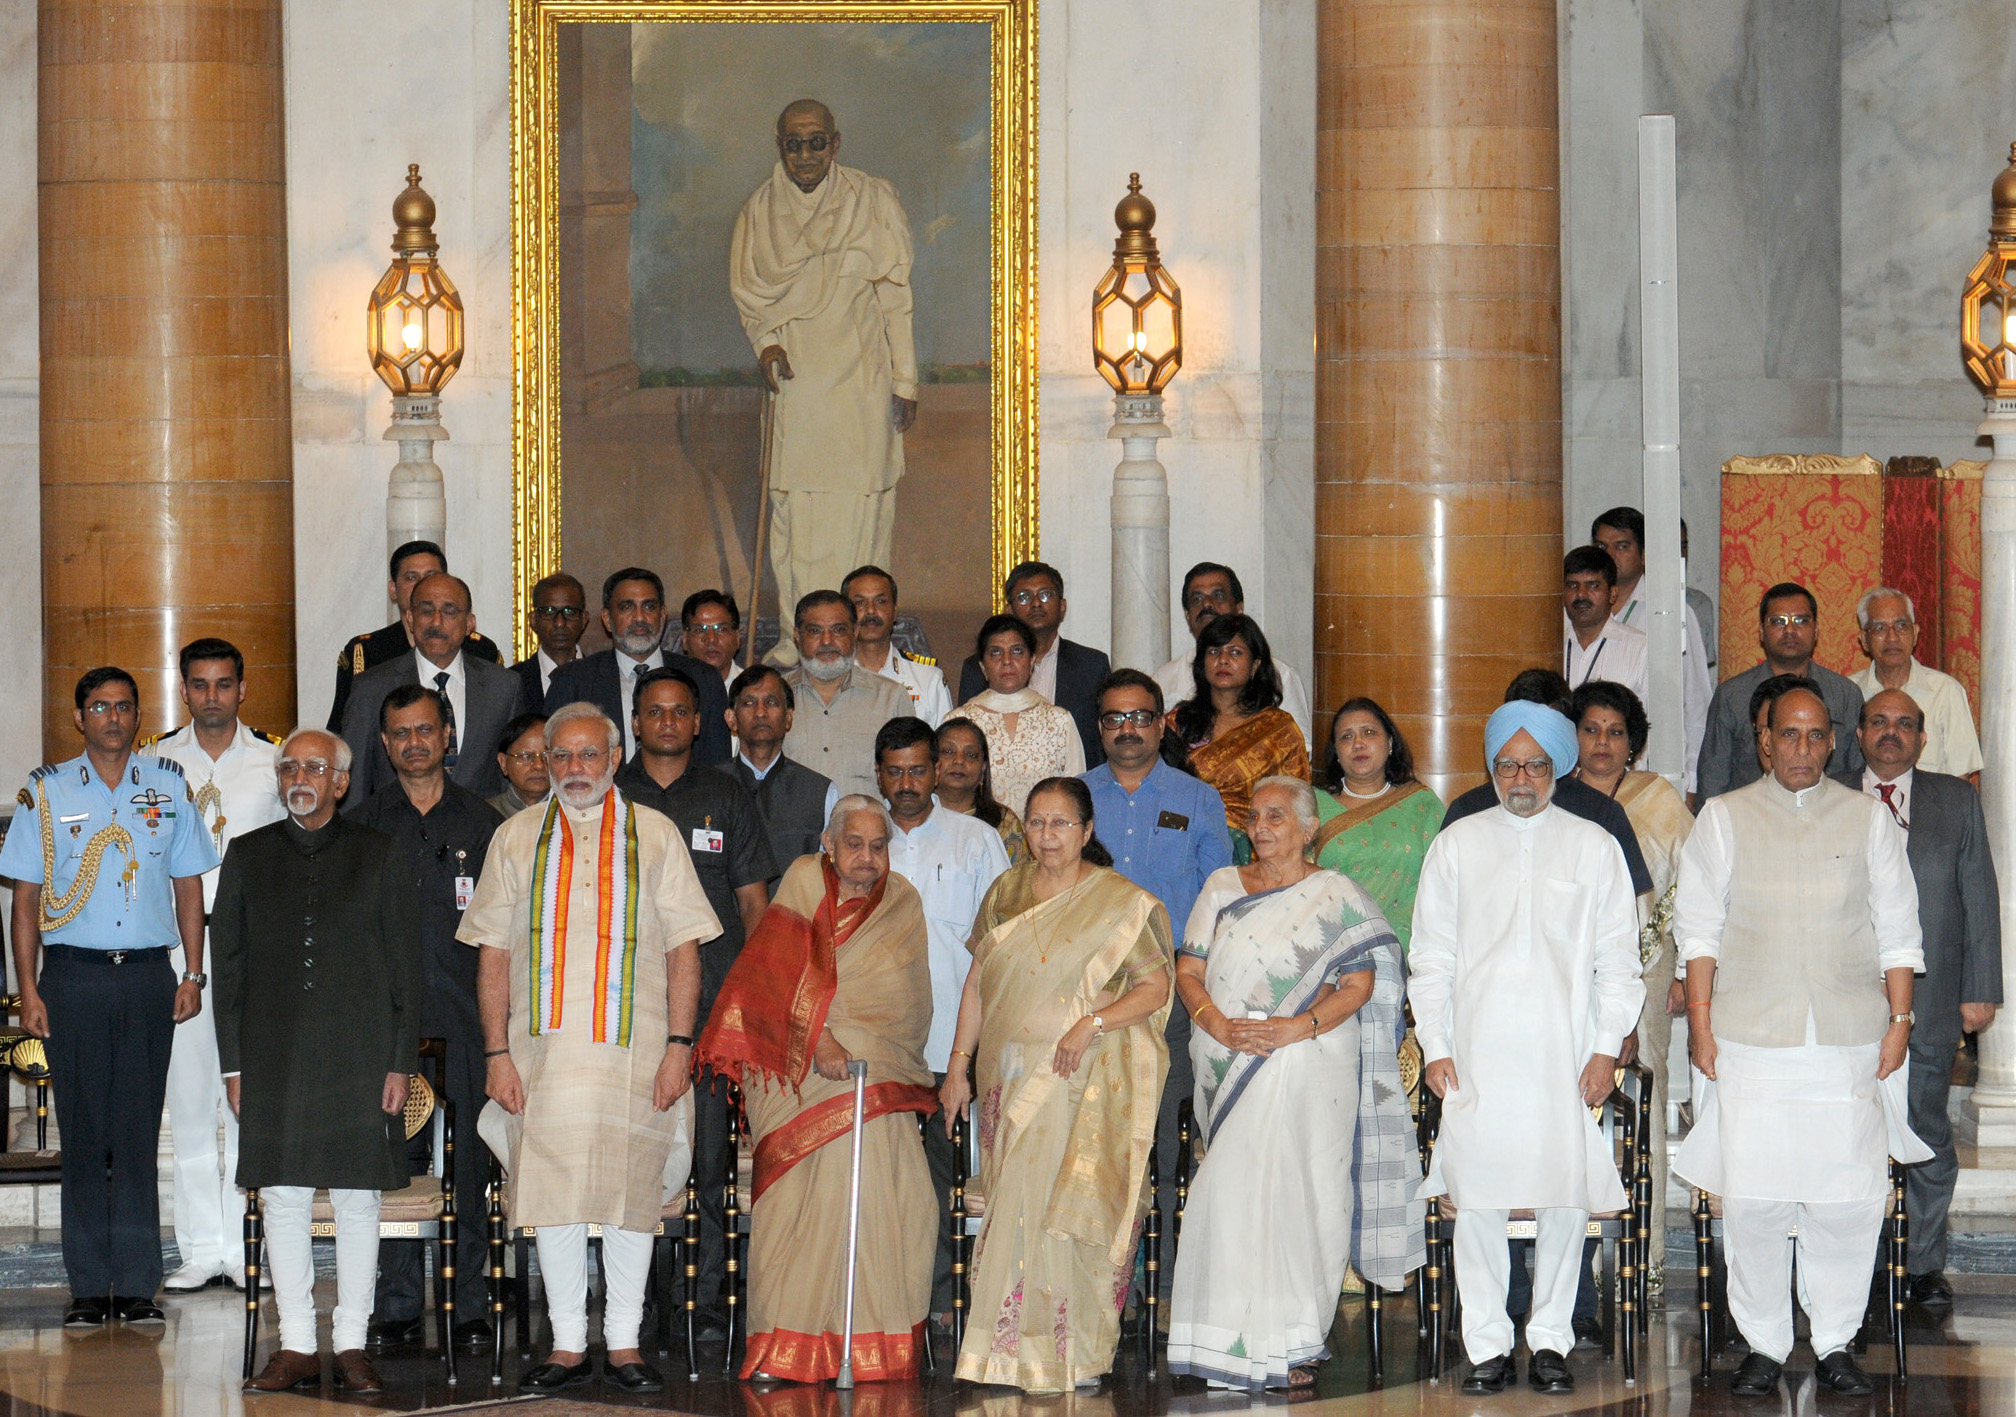 The Prime Minister, Shri Narendra Modi at the 'At Home' reception for Freedom Fighters, hosted by the President, Shri Pranab Mukherjee, at Rashtrapati Bhavan, in New Delhi on August 09, 2015. The Vice President, Shri Mohd. Hamid Ansari, the former Prime Minister, Dr. Manmohan Singh, the Speaker, Lok Sabha, Smt. Sumitra Mahajan, the Union Home Minister, Shri Rajnath Singh, the Chief Minister of Delhi, Shri Arvind Kejriwal and other dignitaries are also seen.